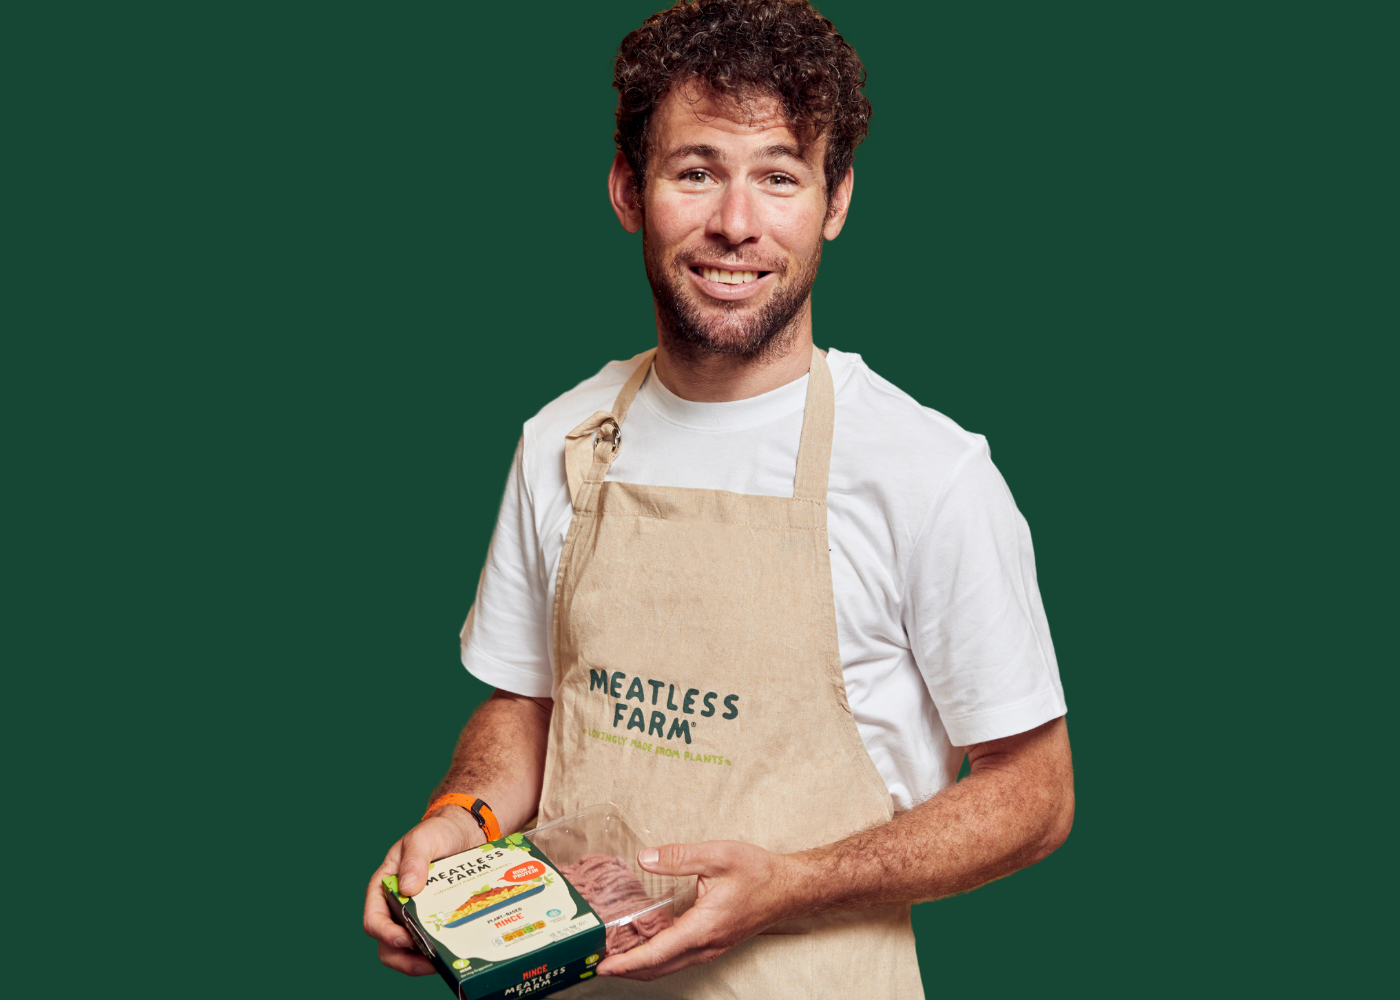 Mark Cavendish holding a pack of Meatless Farm